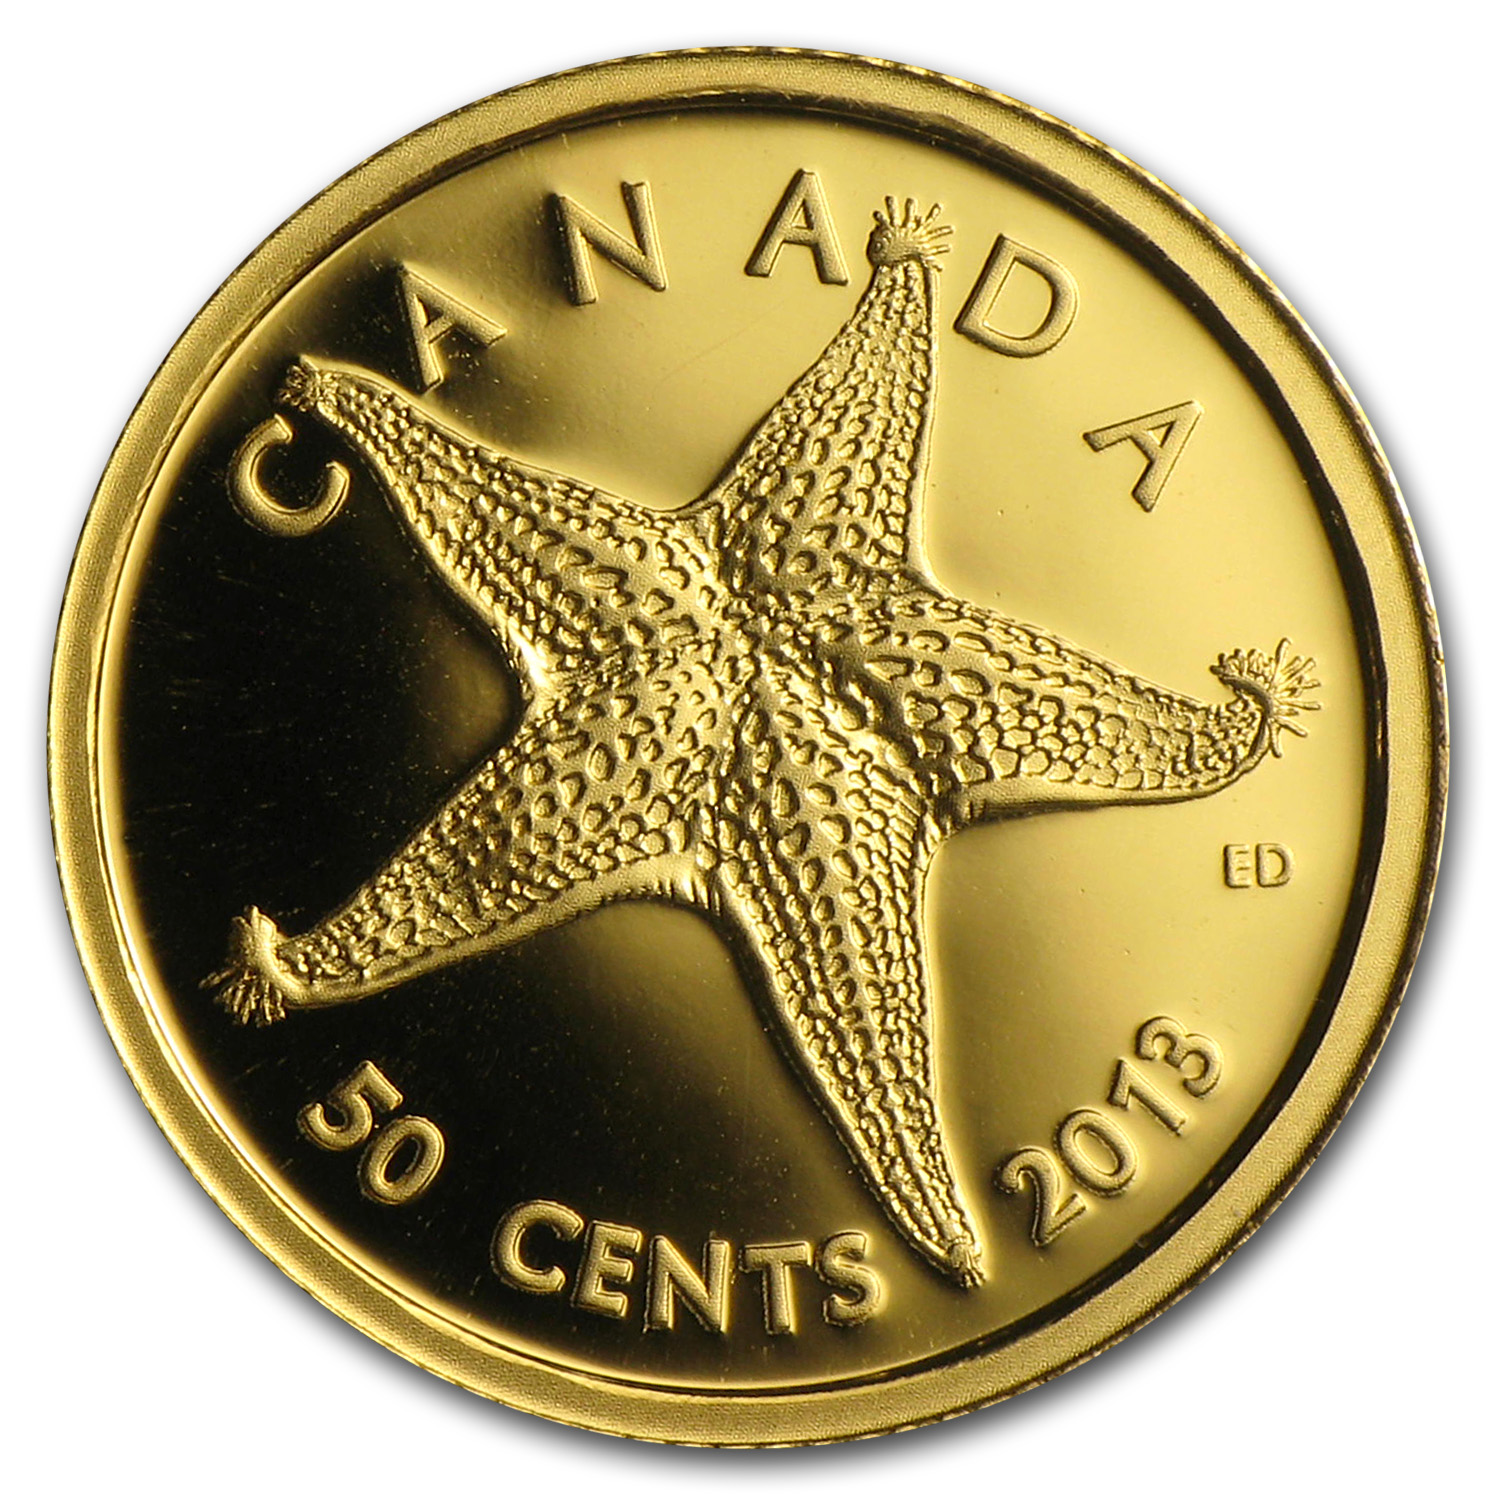 2013 Canada 1/25 oz Proof Gold $0.50 Sea Creatures Starfish